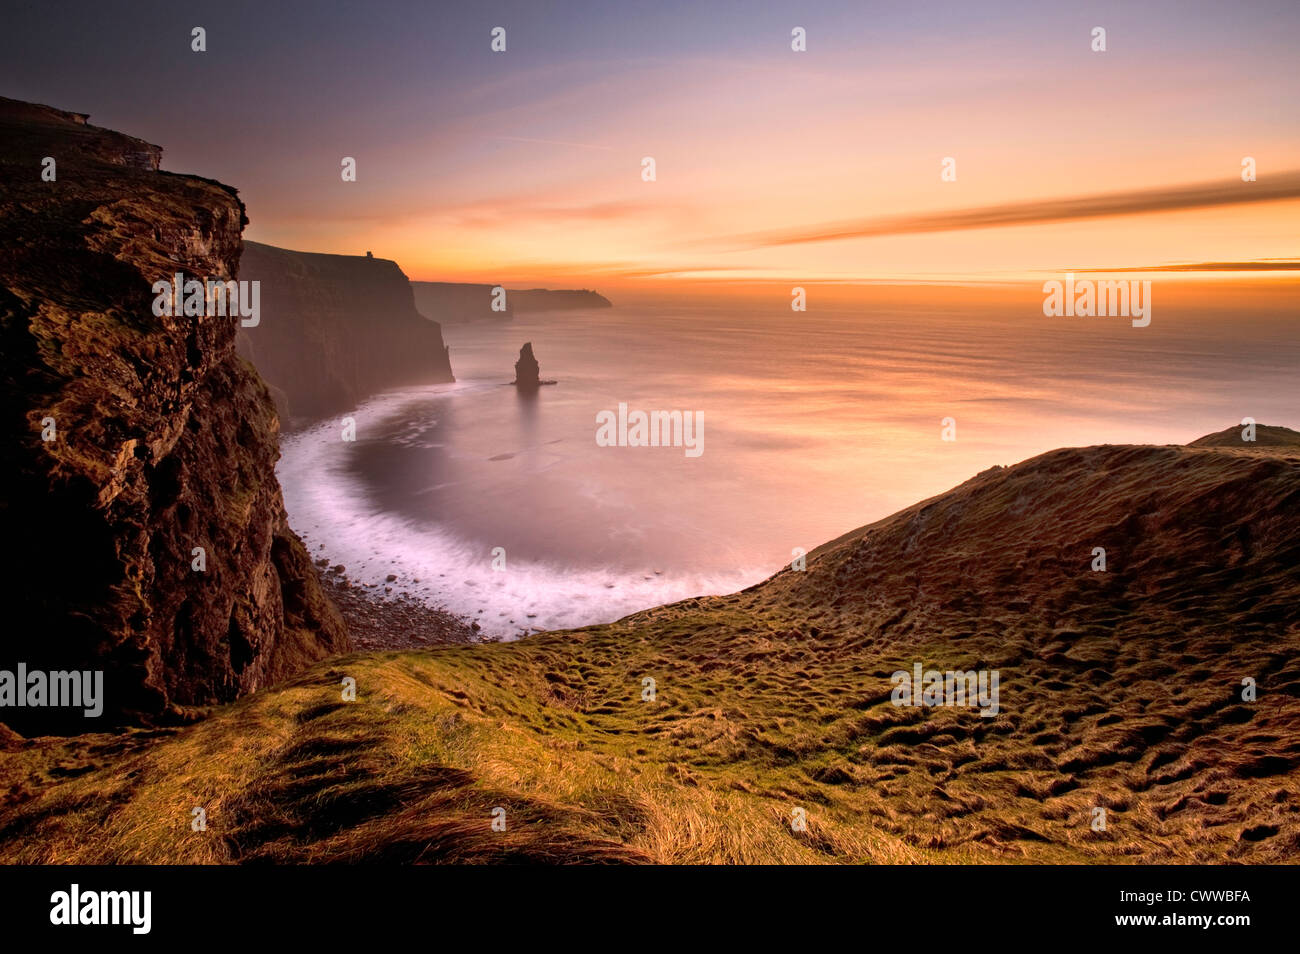 Waves crashing on rocky beach - Stock Image